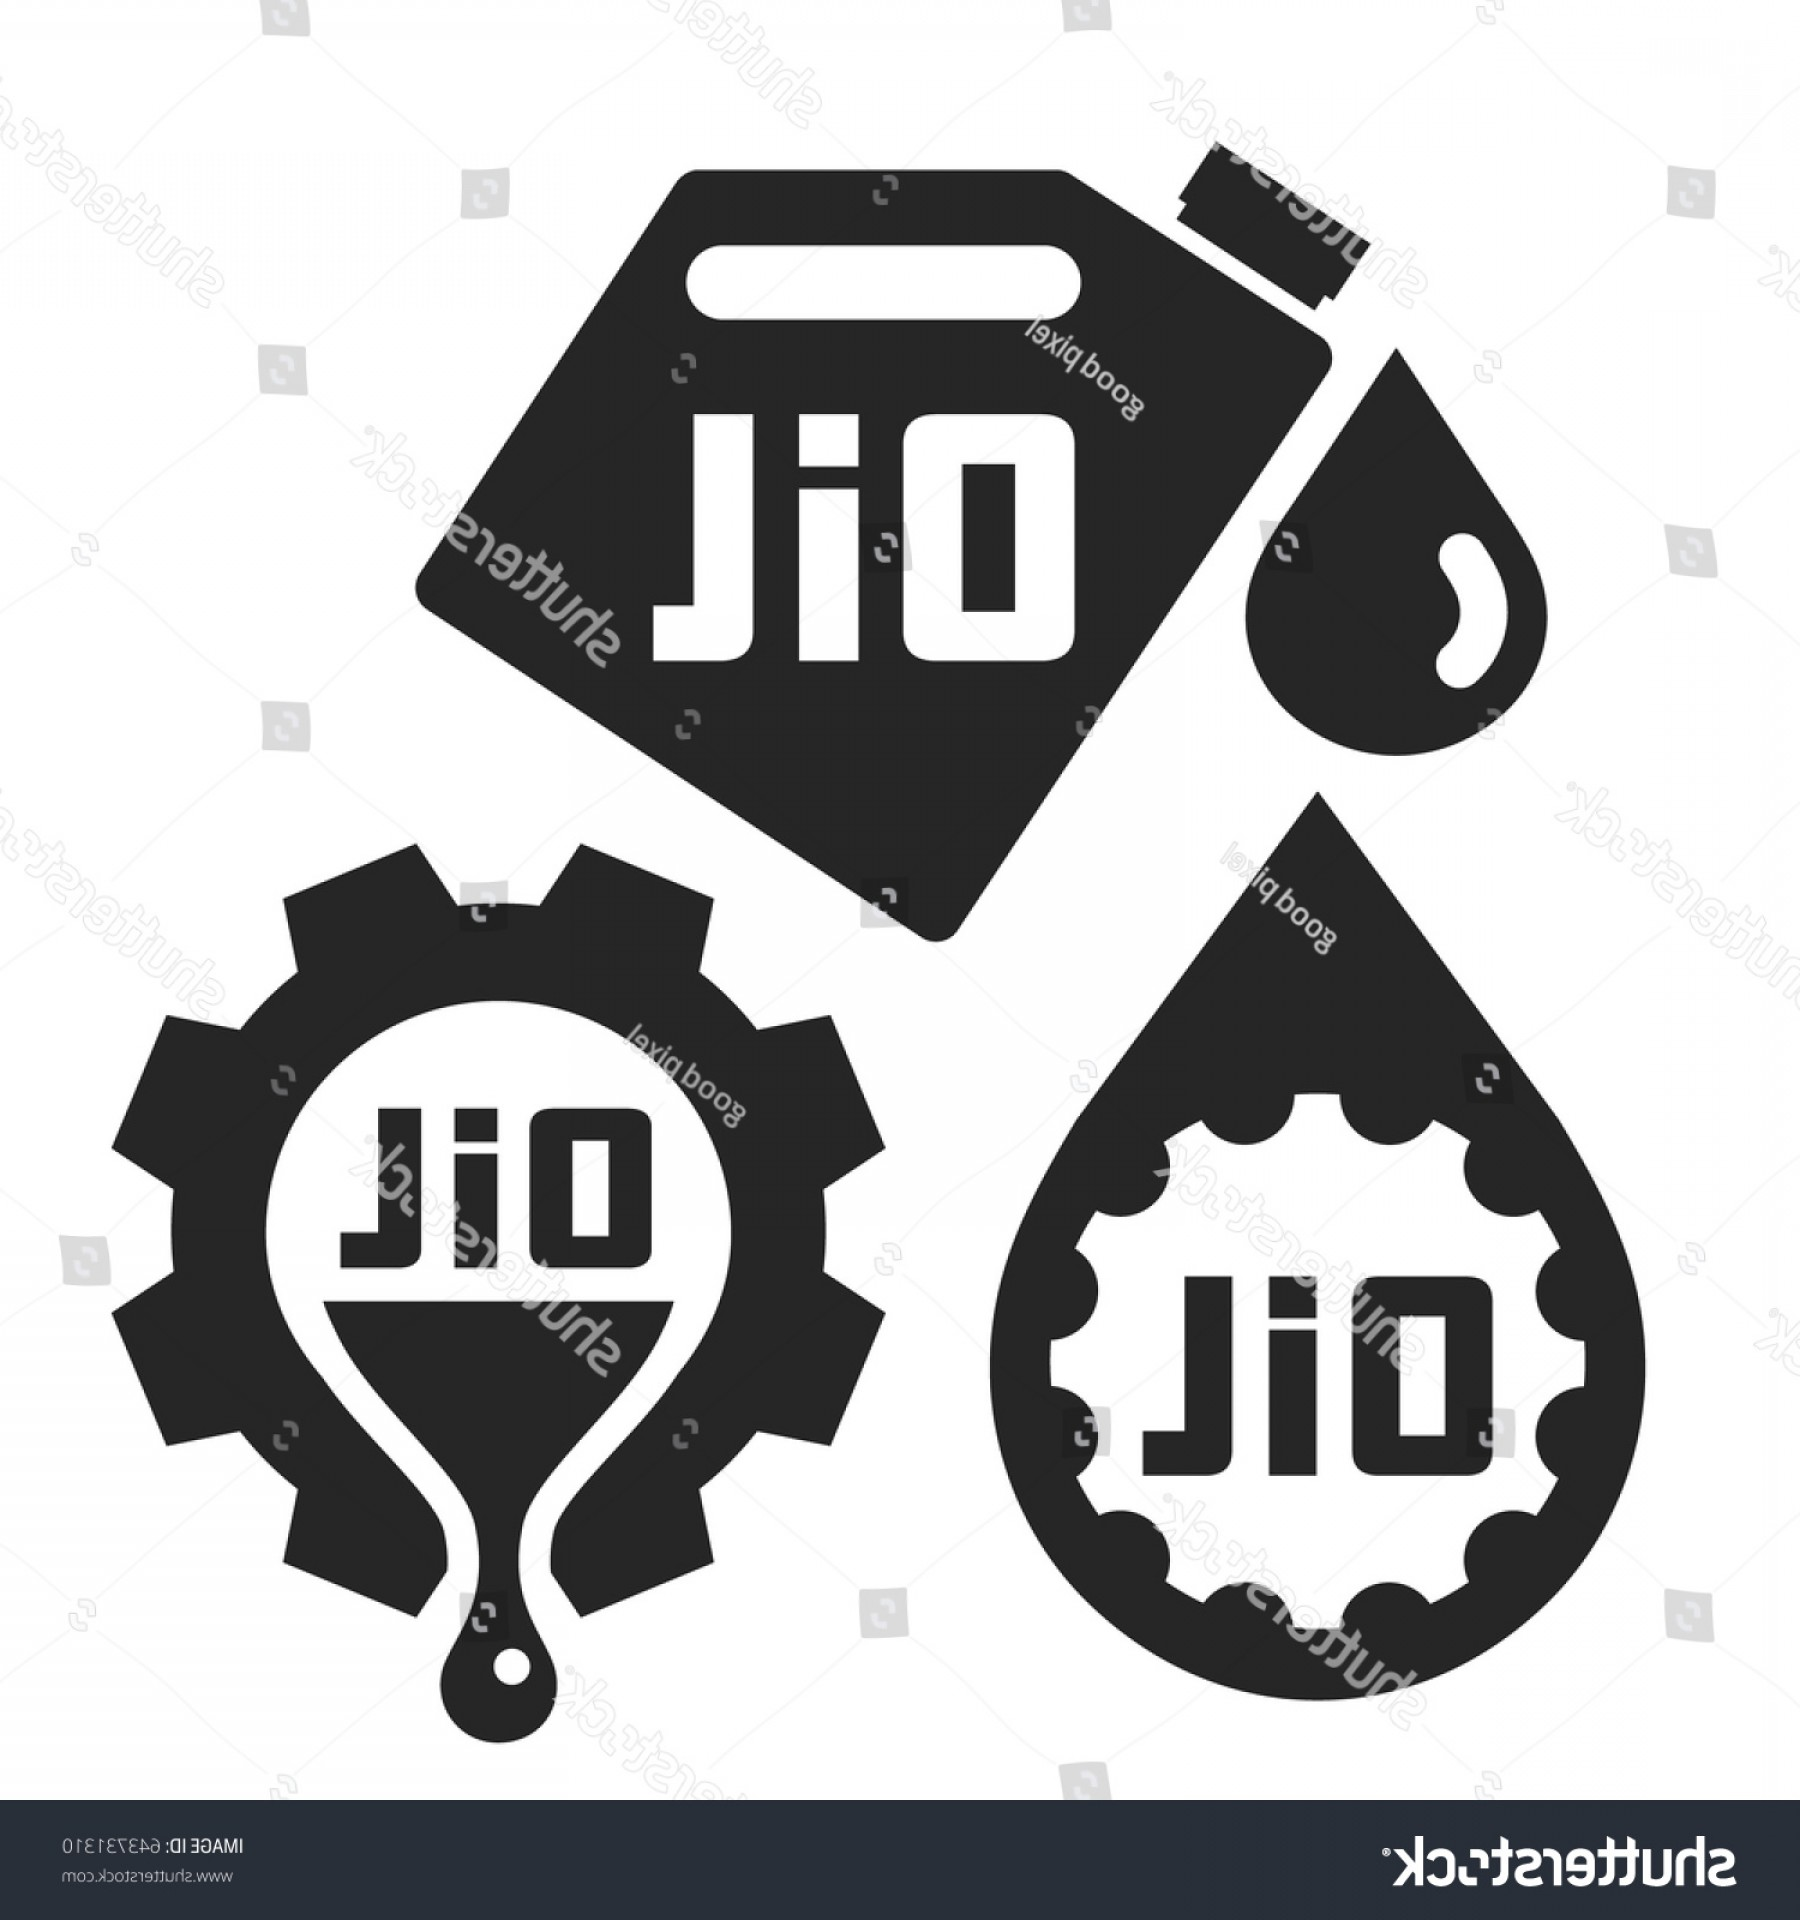 Oil Change Vector: Oil Change Service Signs Icons Vector